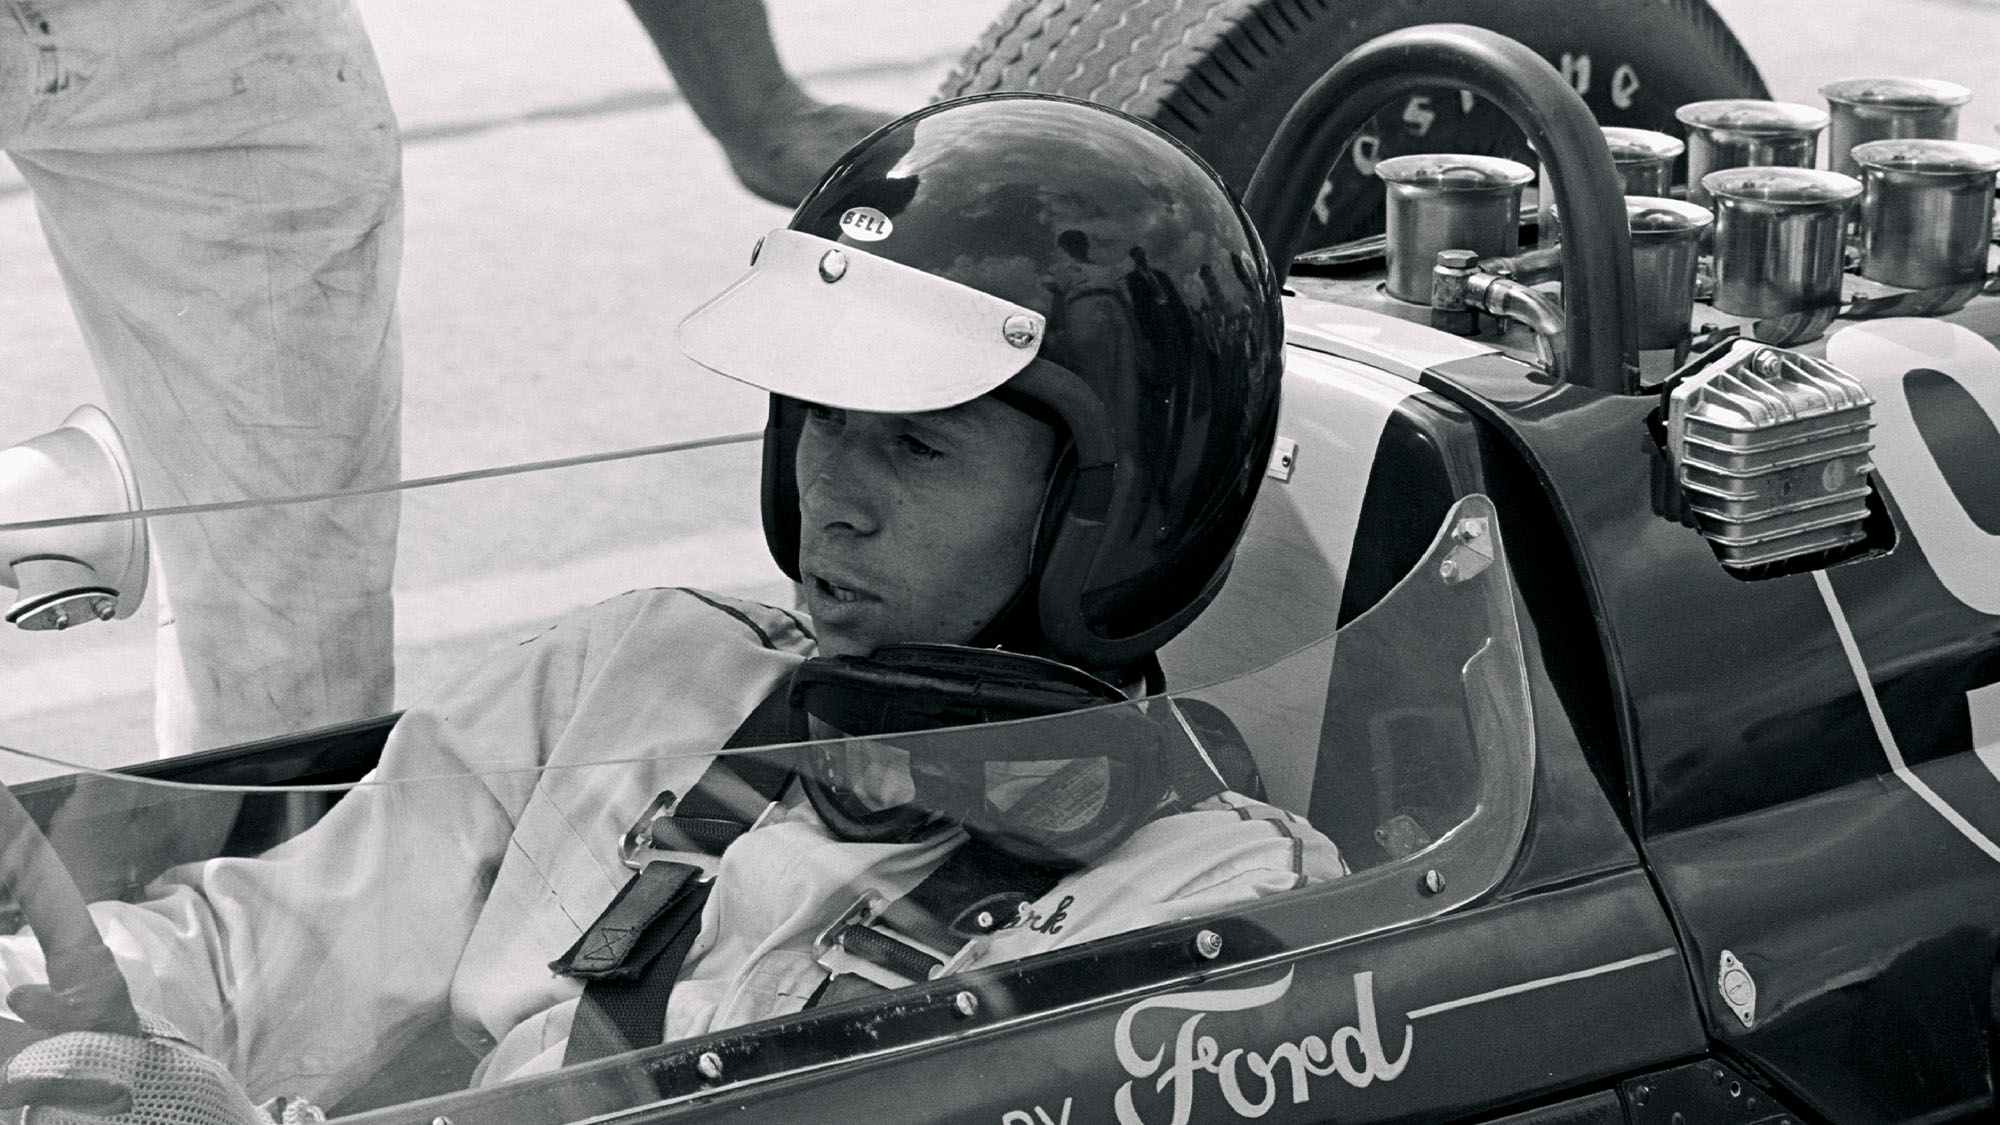 UNITED STATES - JUNE 03: 1963 Indianapolis 500. Lotus driver Jim Clark sits in his Ford powered Lotus 29. Clark will go on to finish the race in second place, Clark will also go to win his first Formula One World Championship later in the year in a Lotus. (Photo by Bob D'Olivo/The Enthusiast Network via Getty Images/Getty Images)